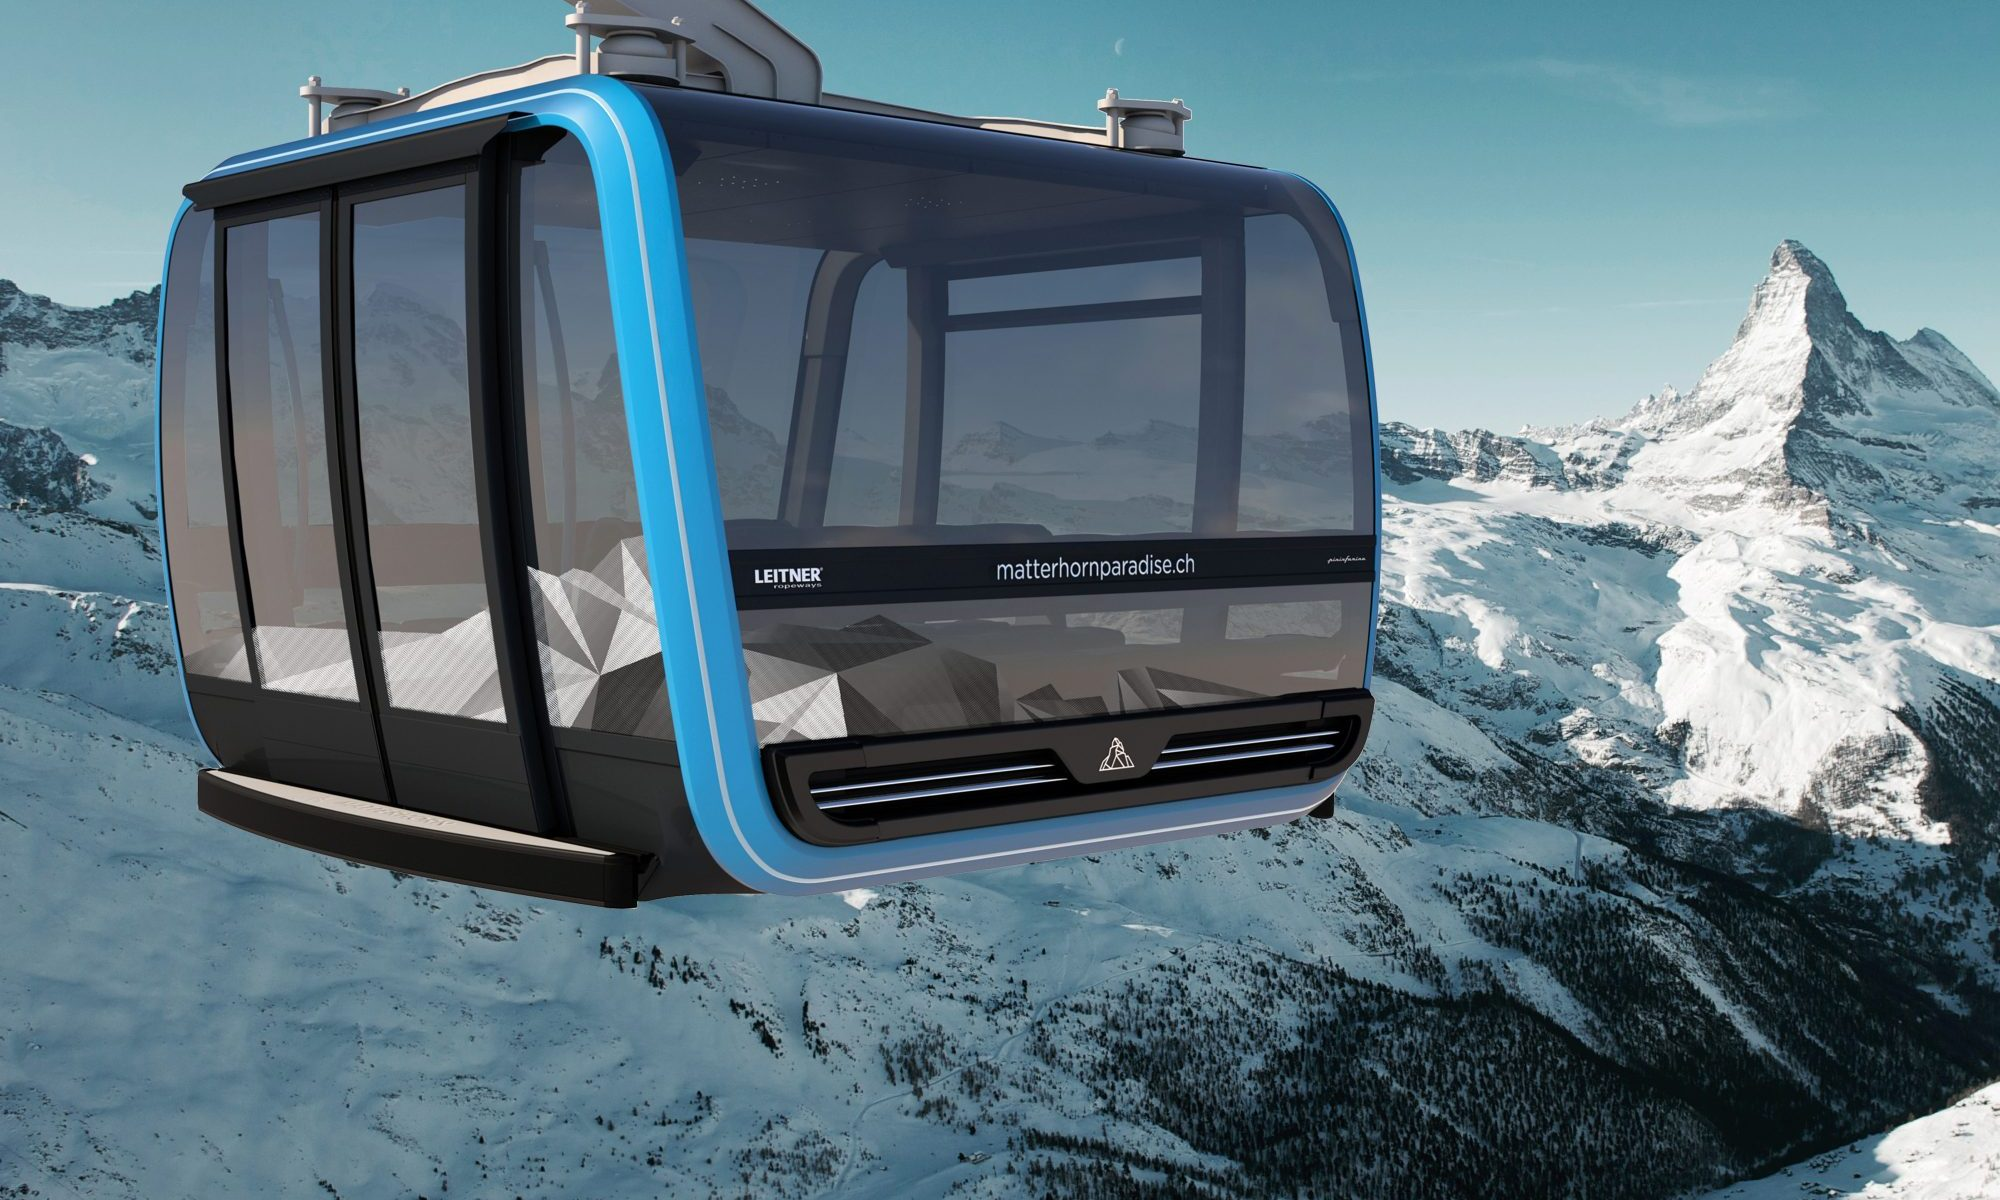 The new Matterhorn Glacier Ride is opening end of September to take you to the Petit Cervin/Klein Matterhorn. Project by Leitner Ropeways. Pinifarina, Swarovski crystals